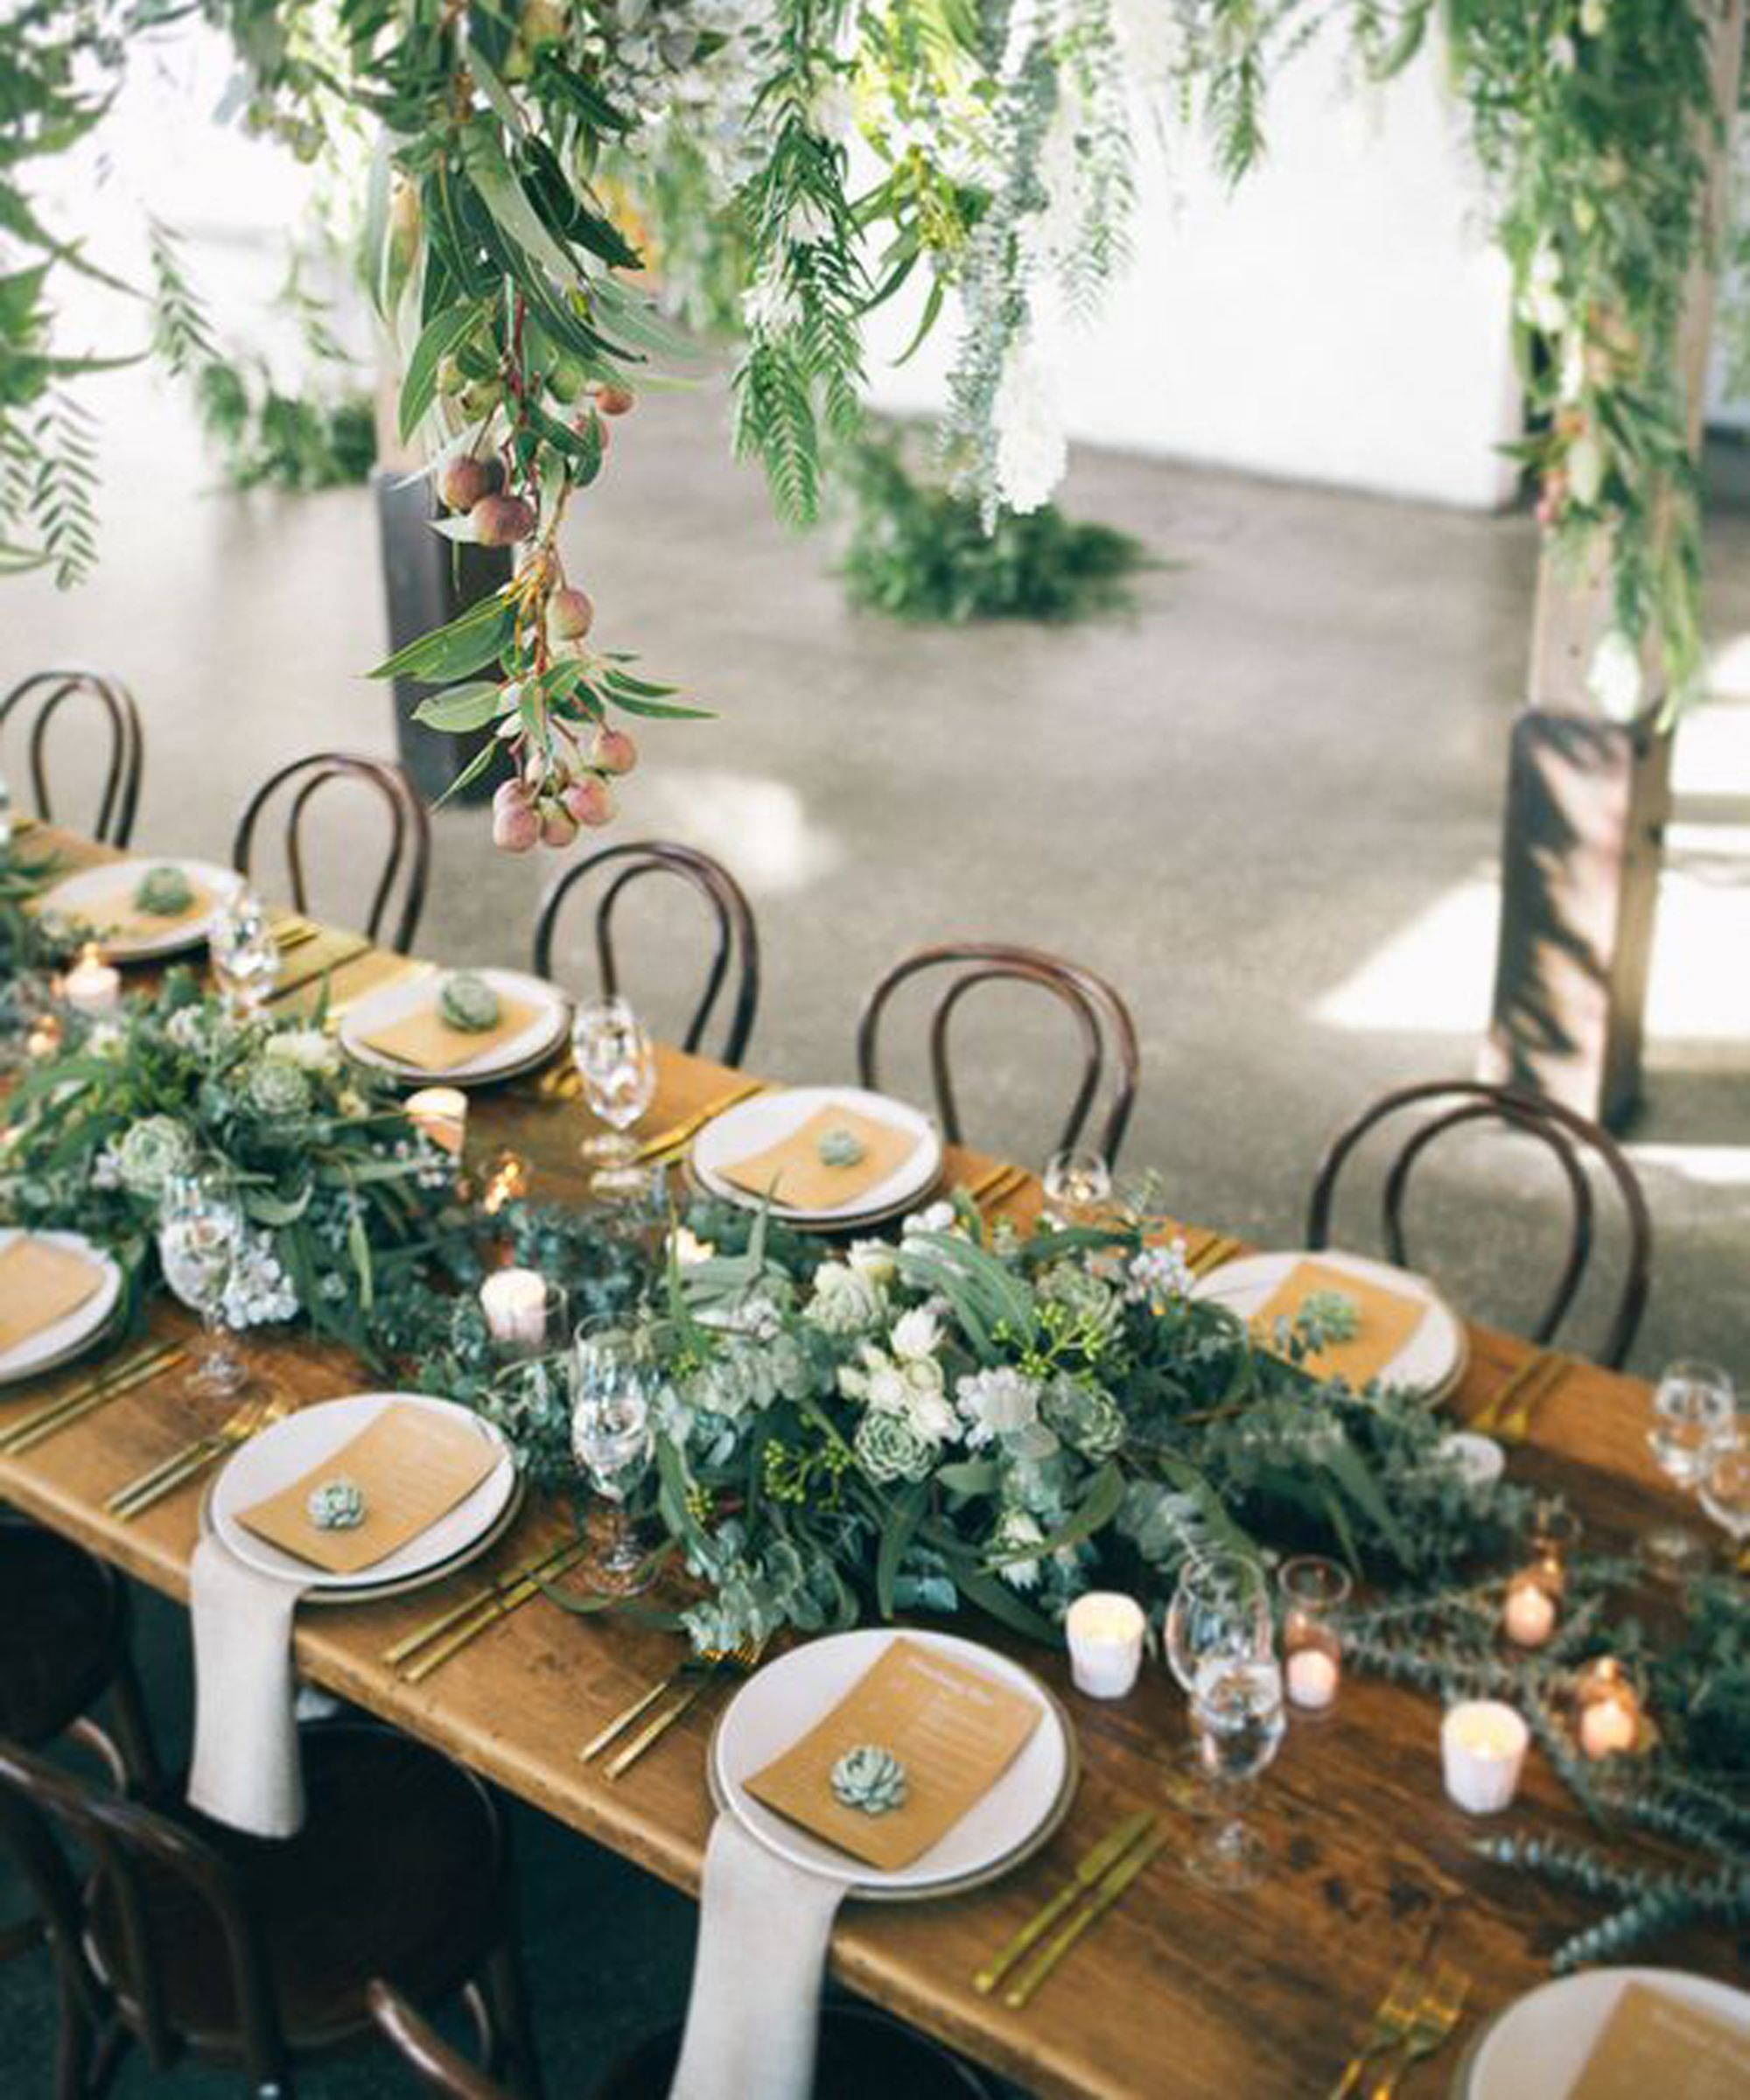 These Stunning Wedding Tablescapes Are #Goals | Rustic wedding table,  Wedding table settings, Wedding tablescapes